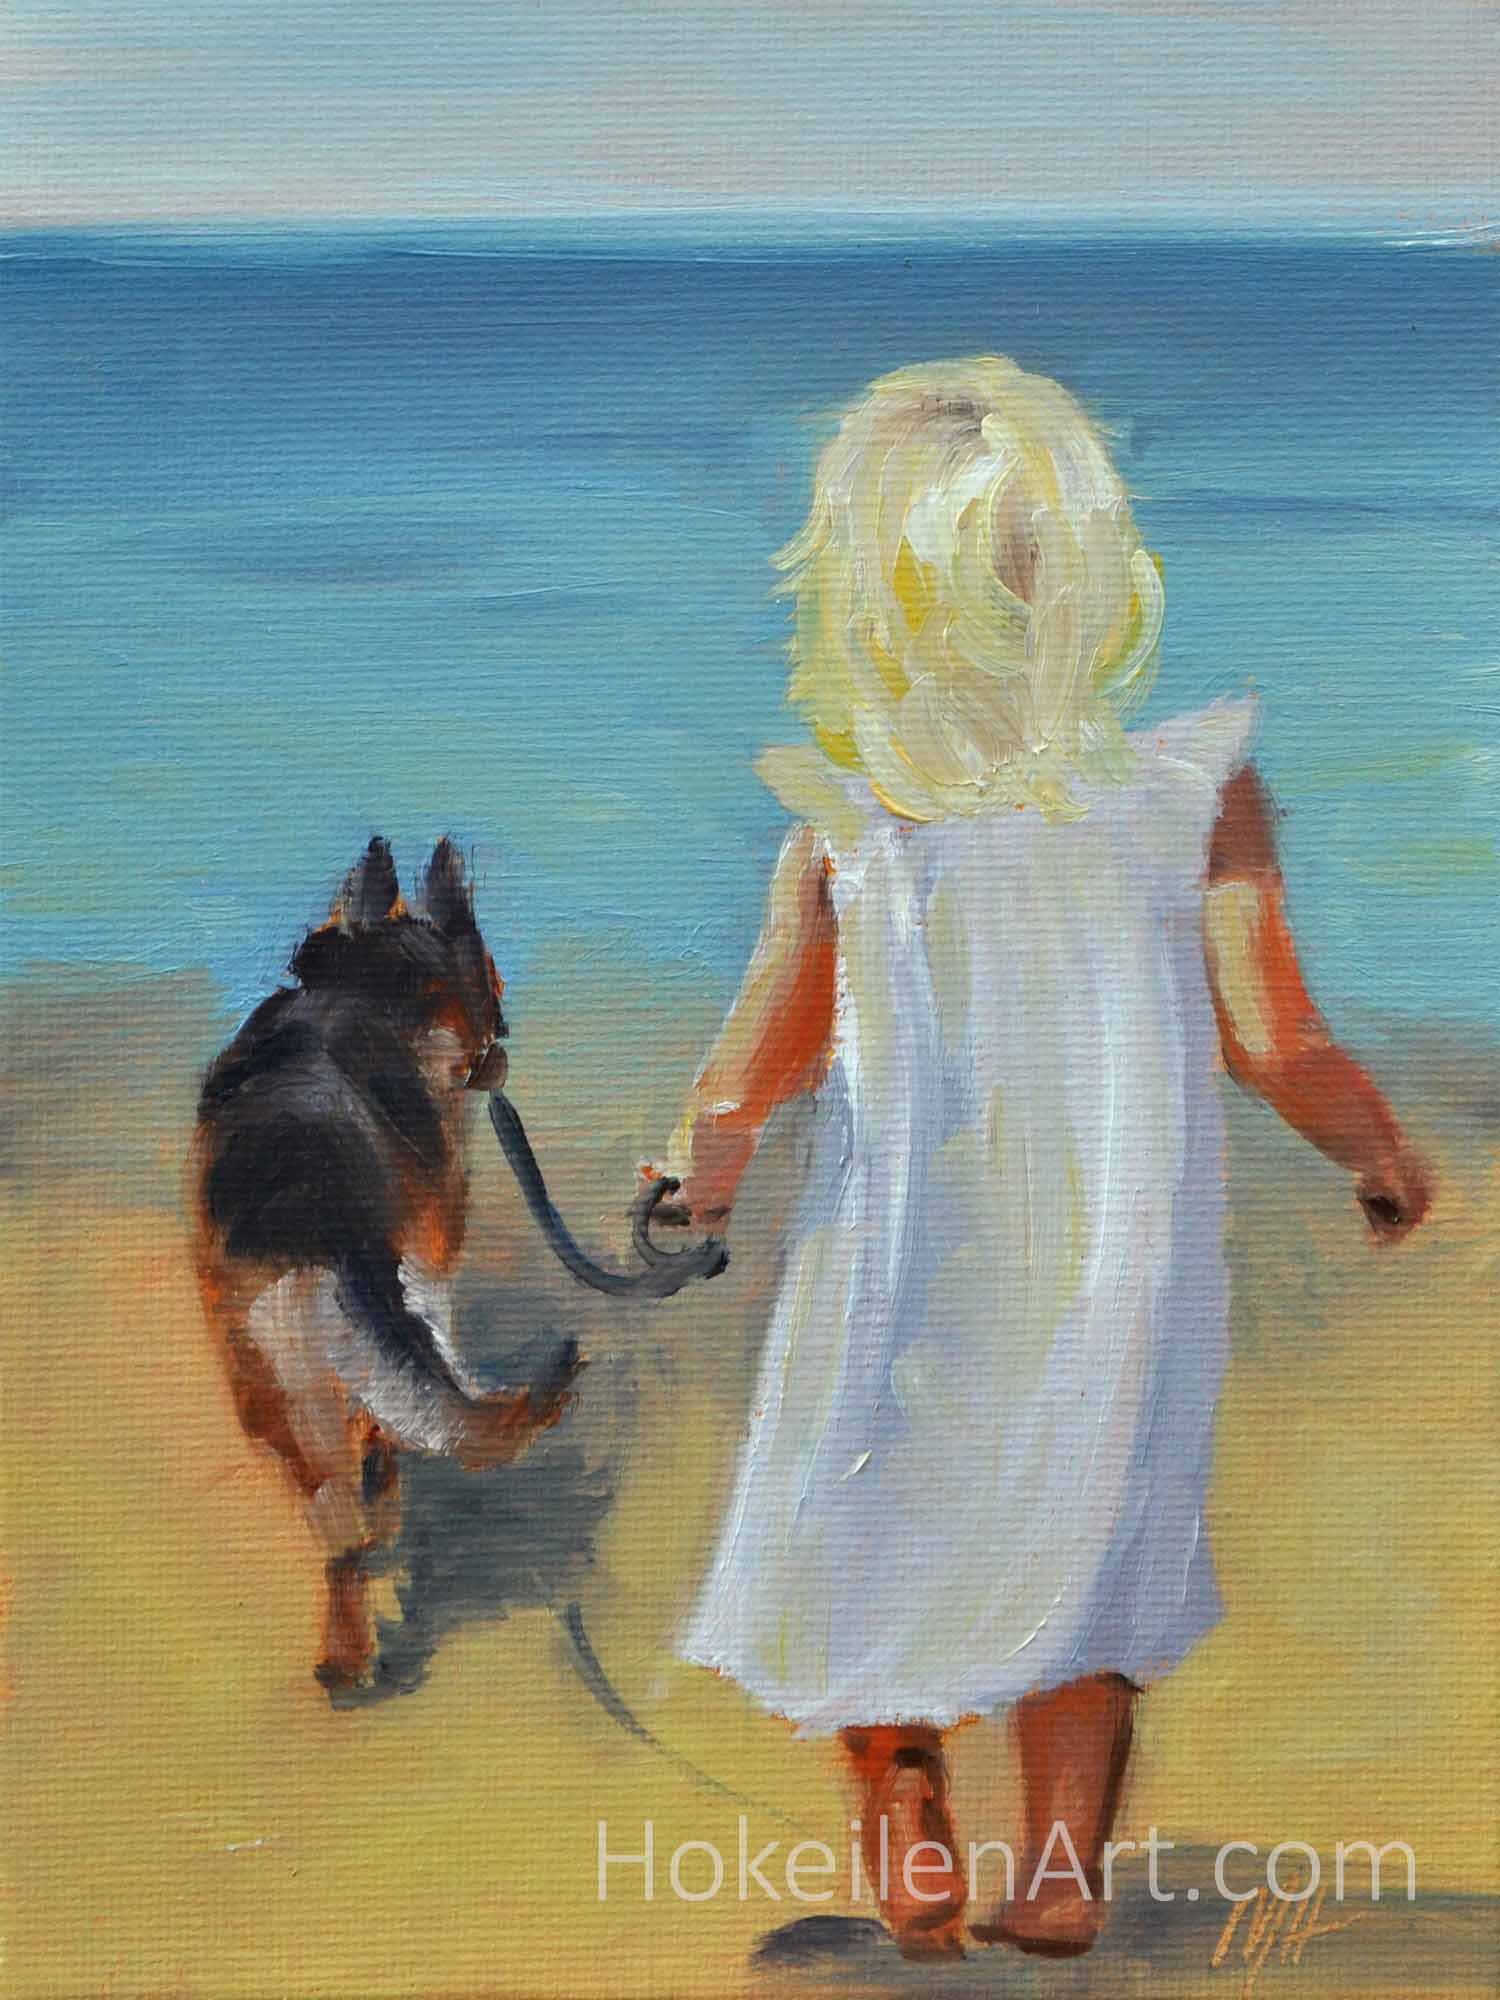 We Can Come Too - oil on canvas board, 8